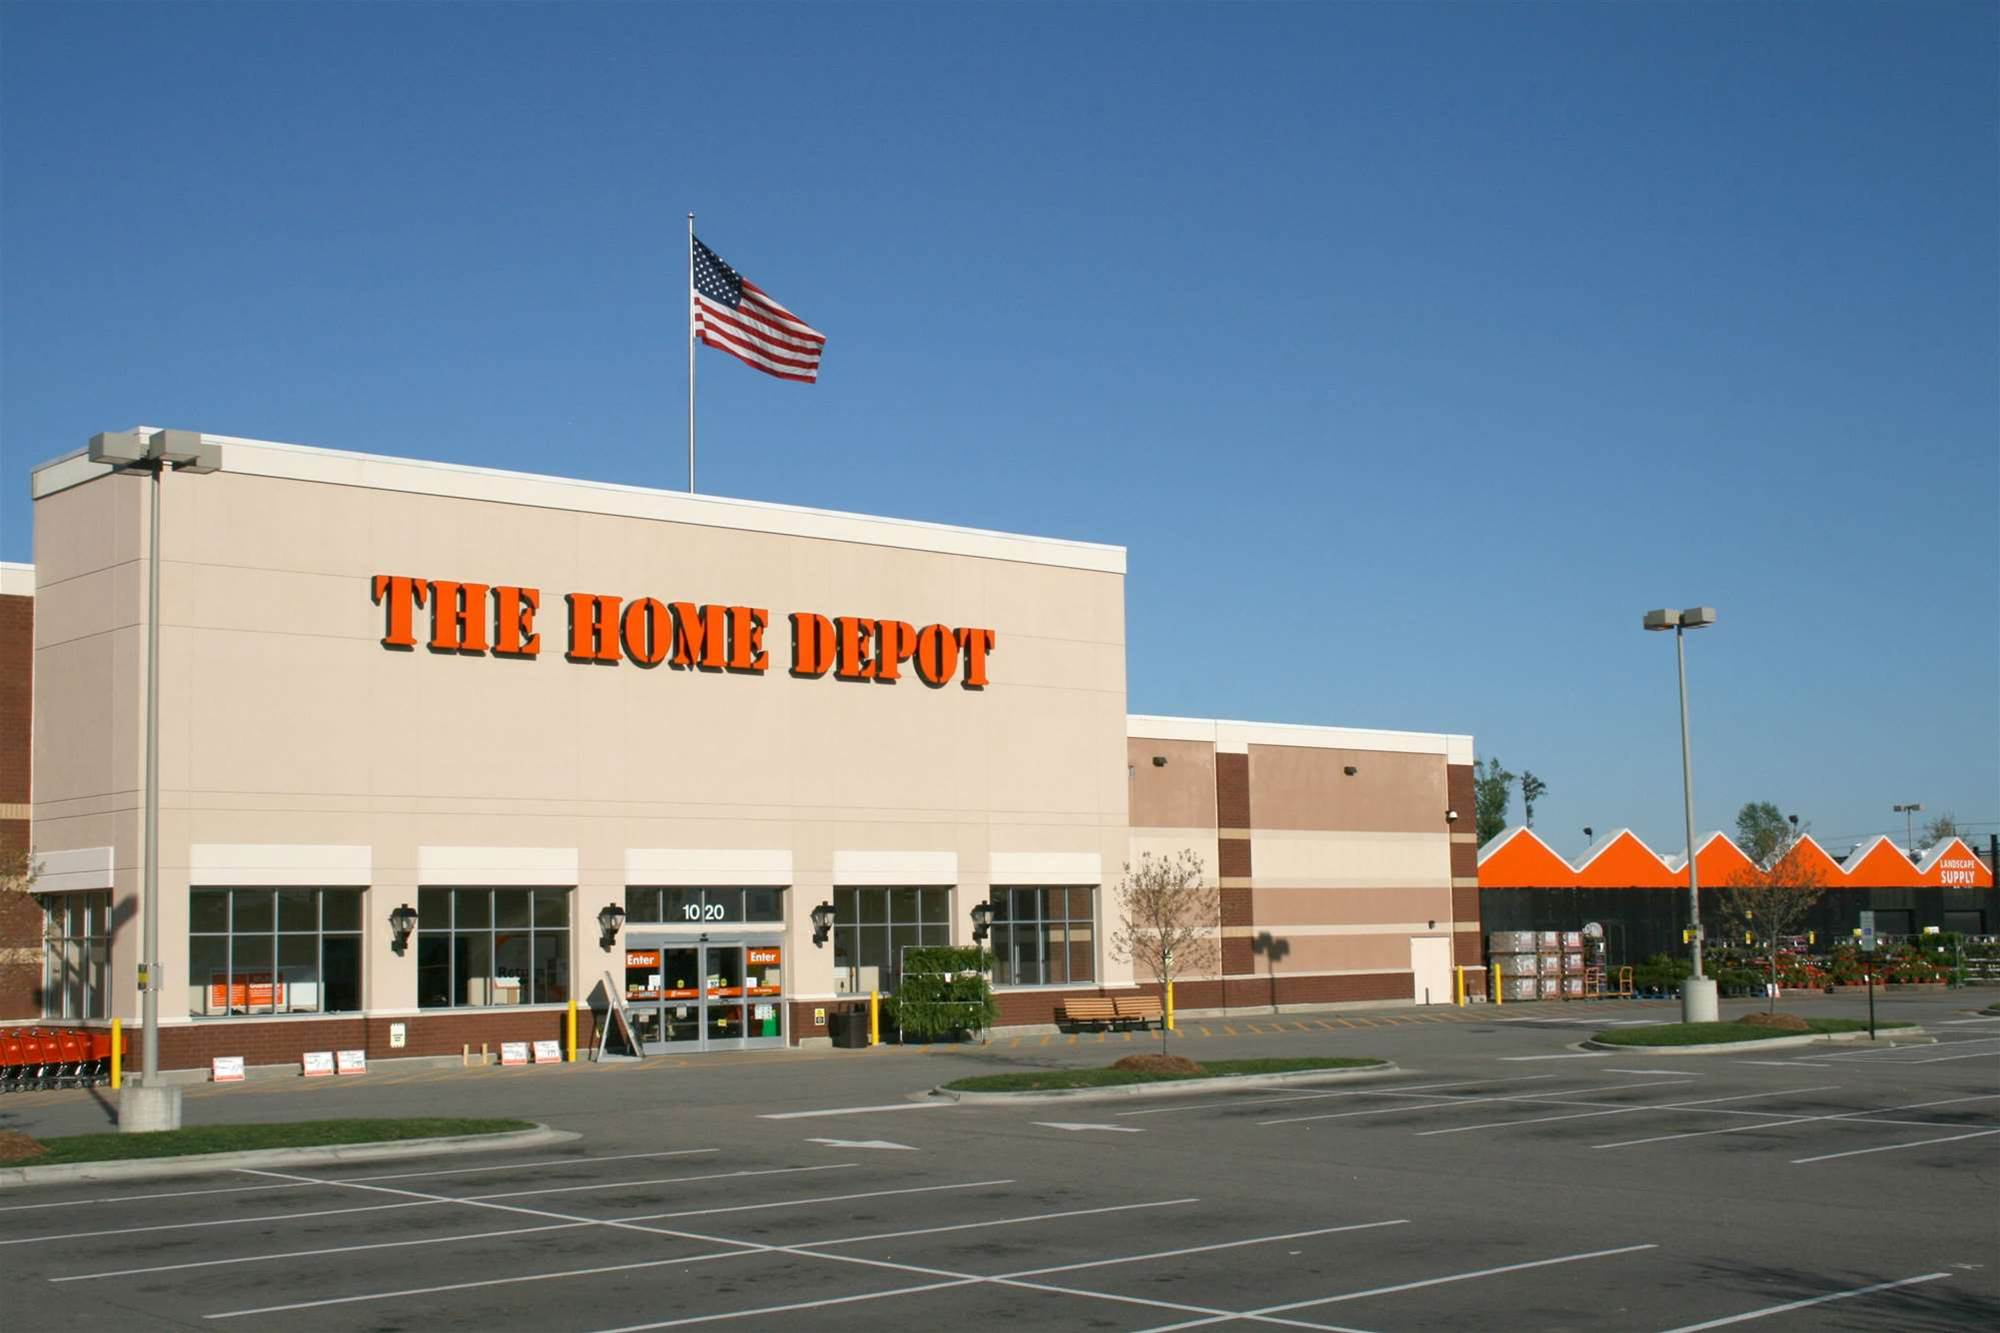 Home Depot to pay out $26m in data breach settlement